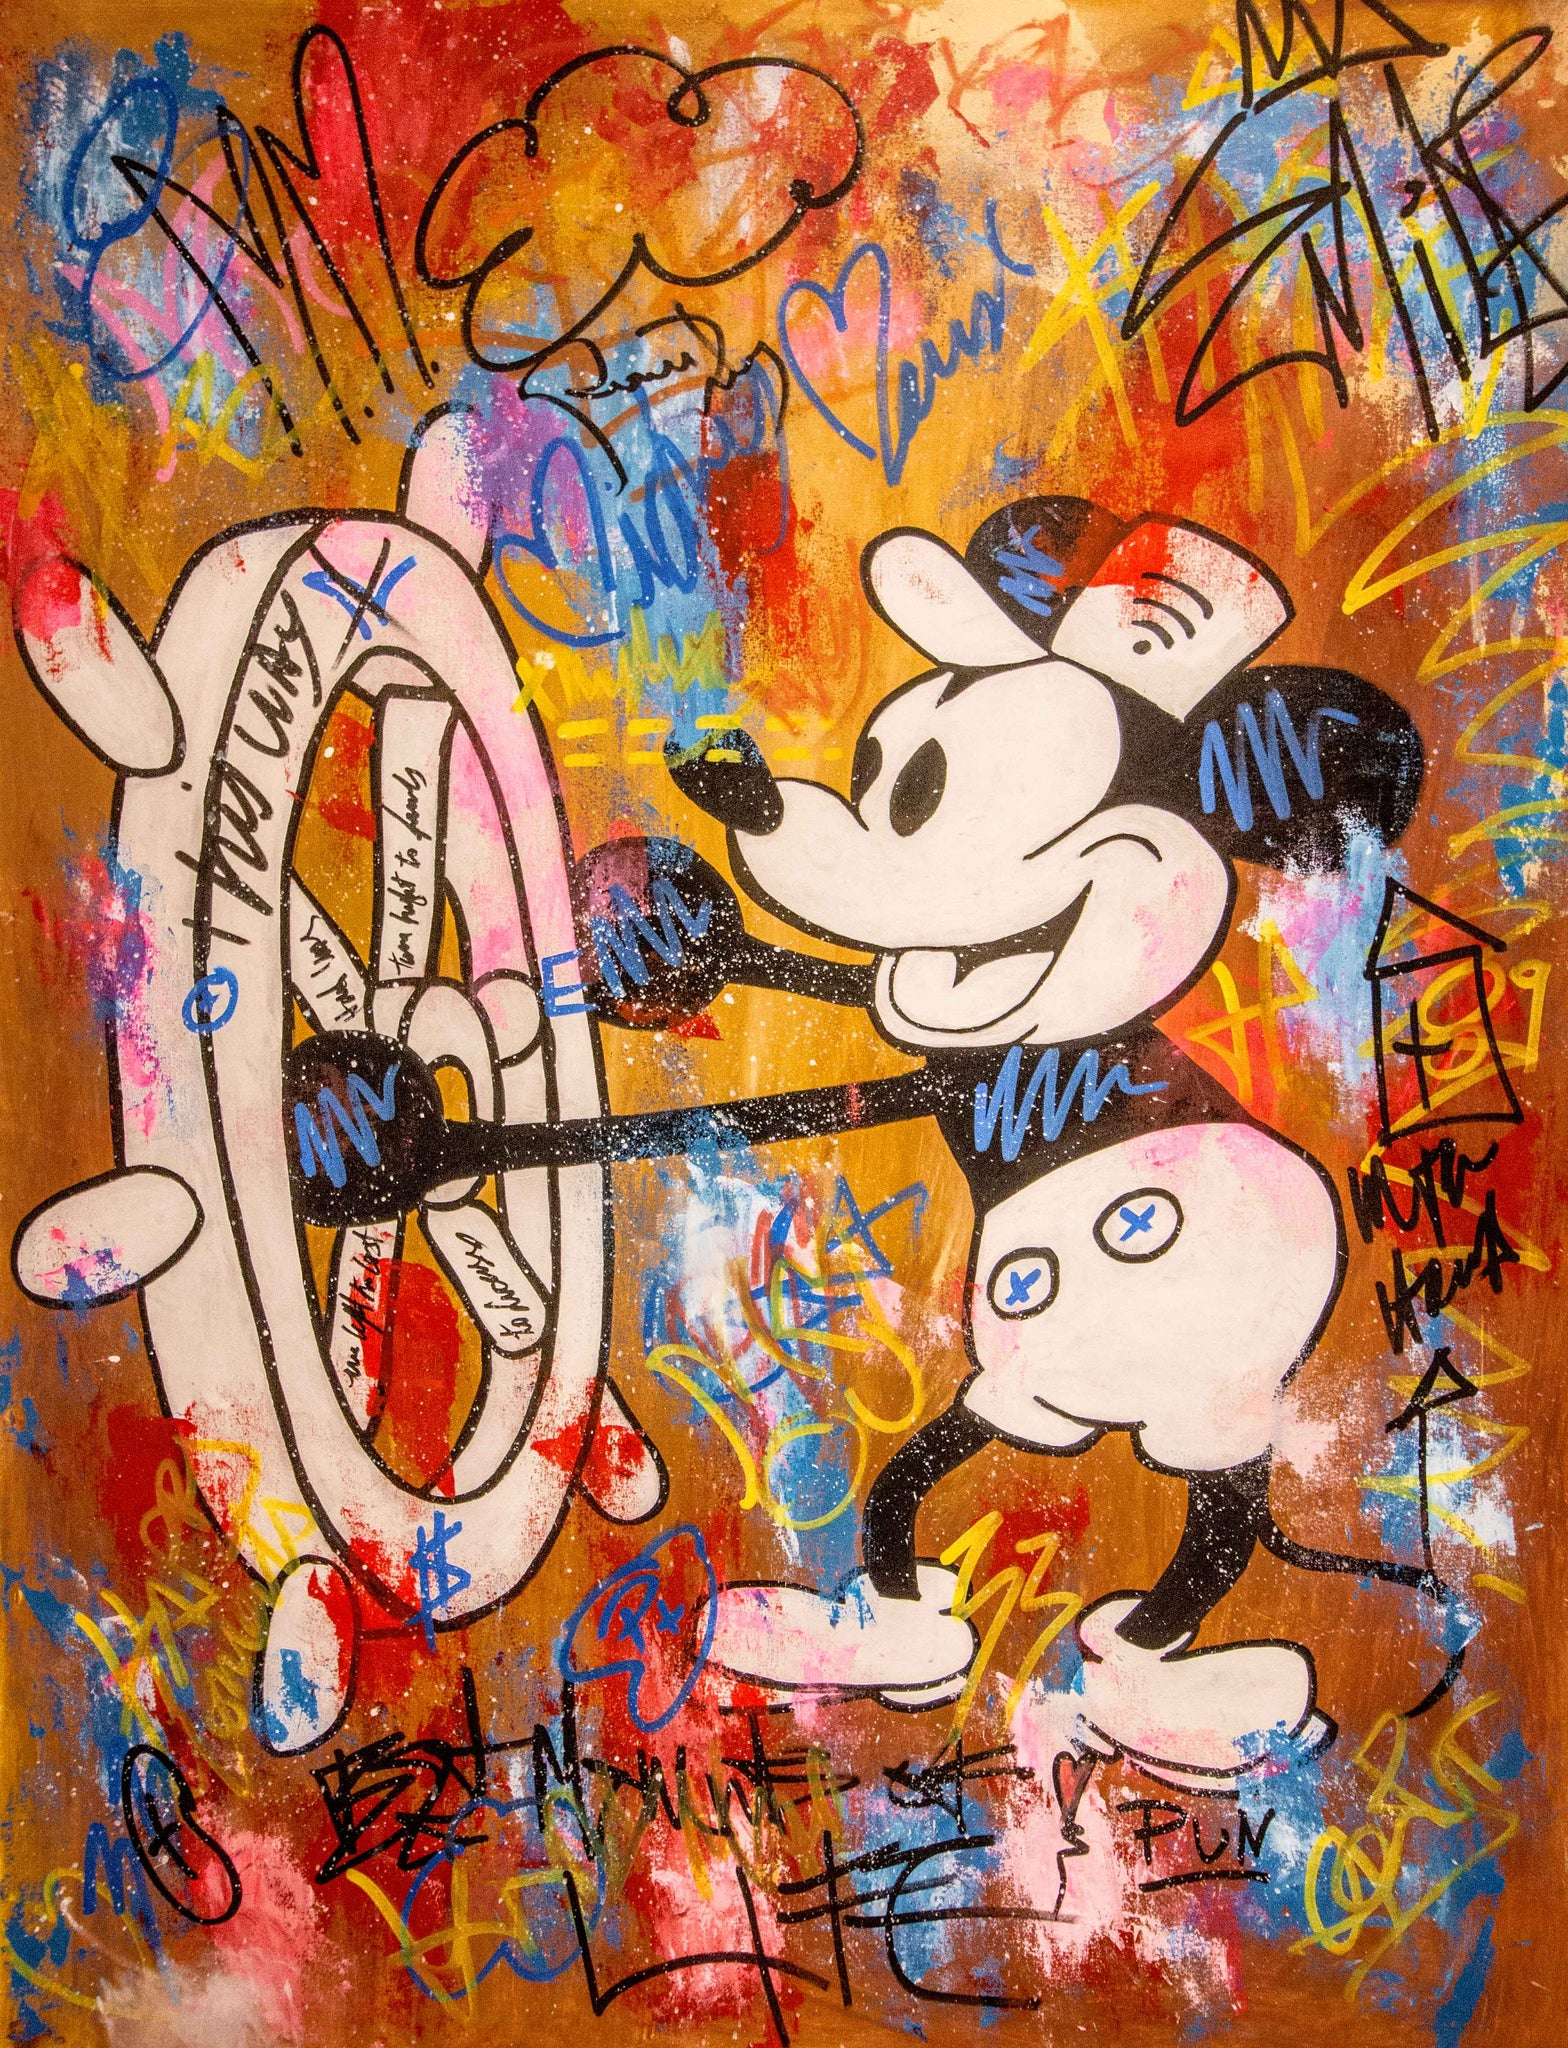 Old Mickey Mouse Sailing- 150x110cm - Free Shipping - Street Art by Carlos Pun